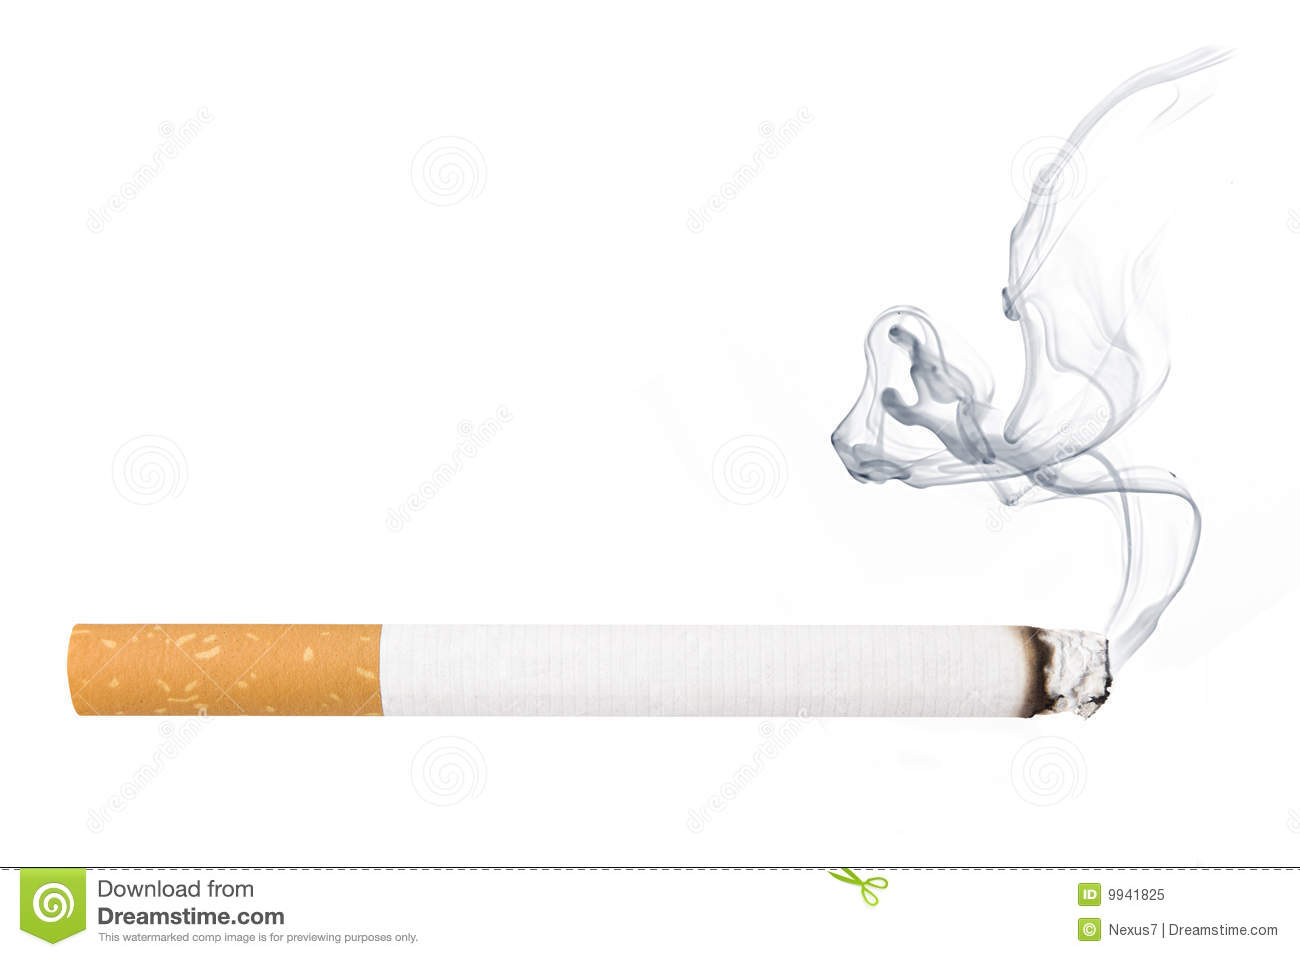 Cigarette Smoke Clipart.